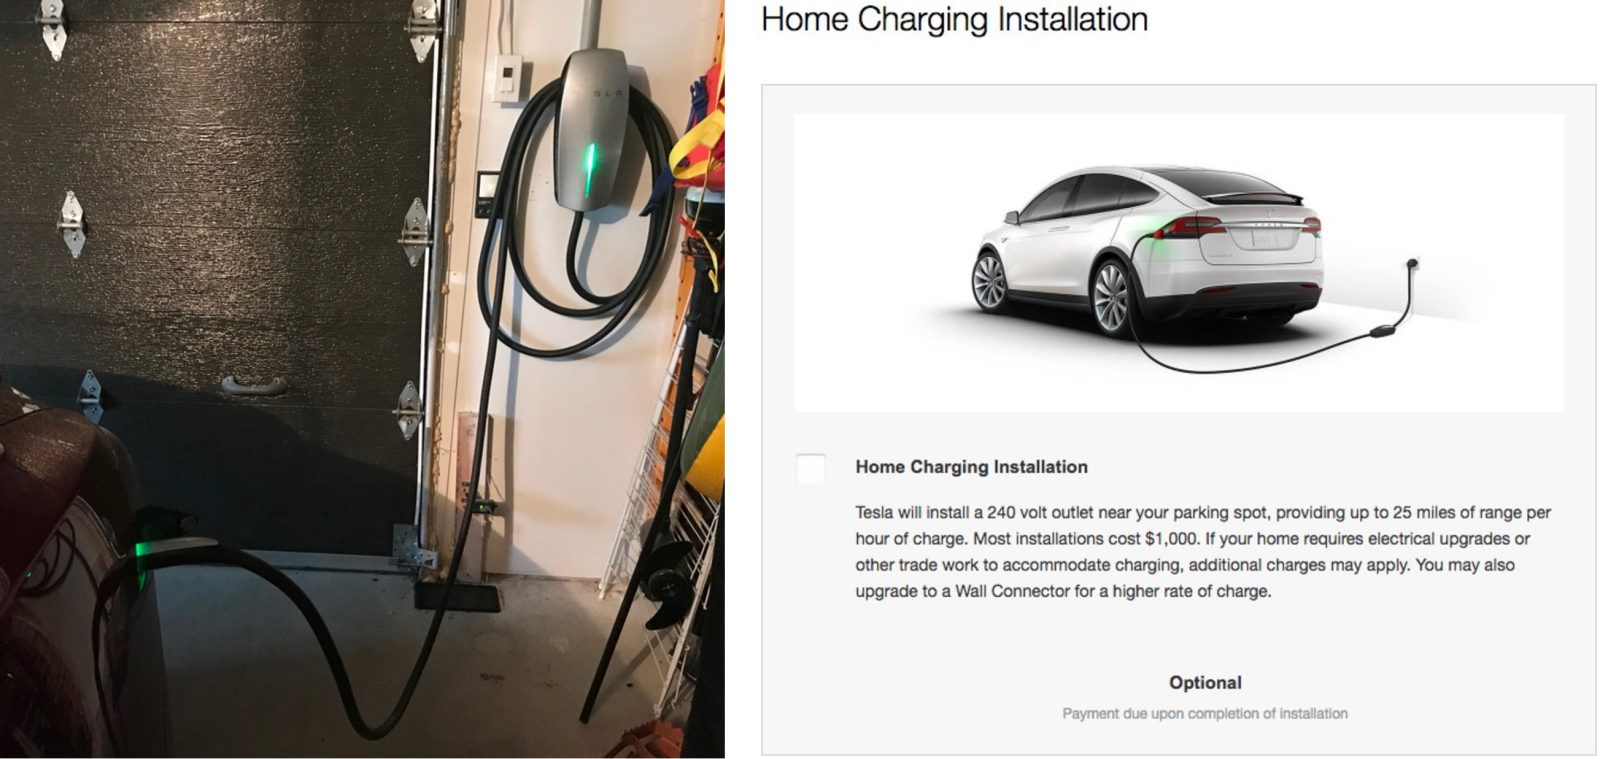 Tesla Starts Offering Home Charging Installations In Certain Markets